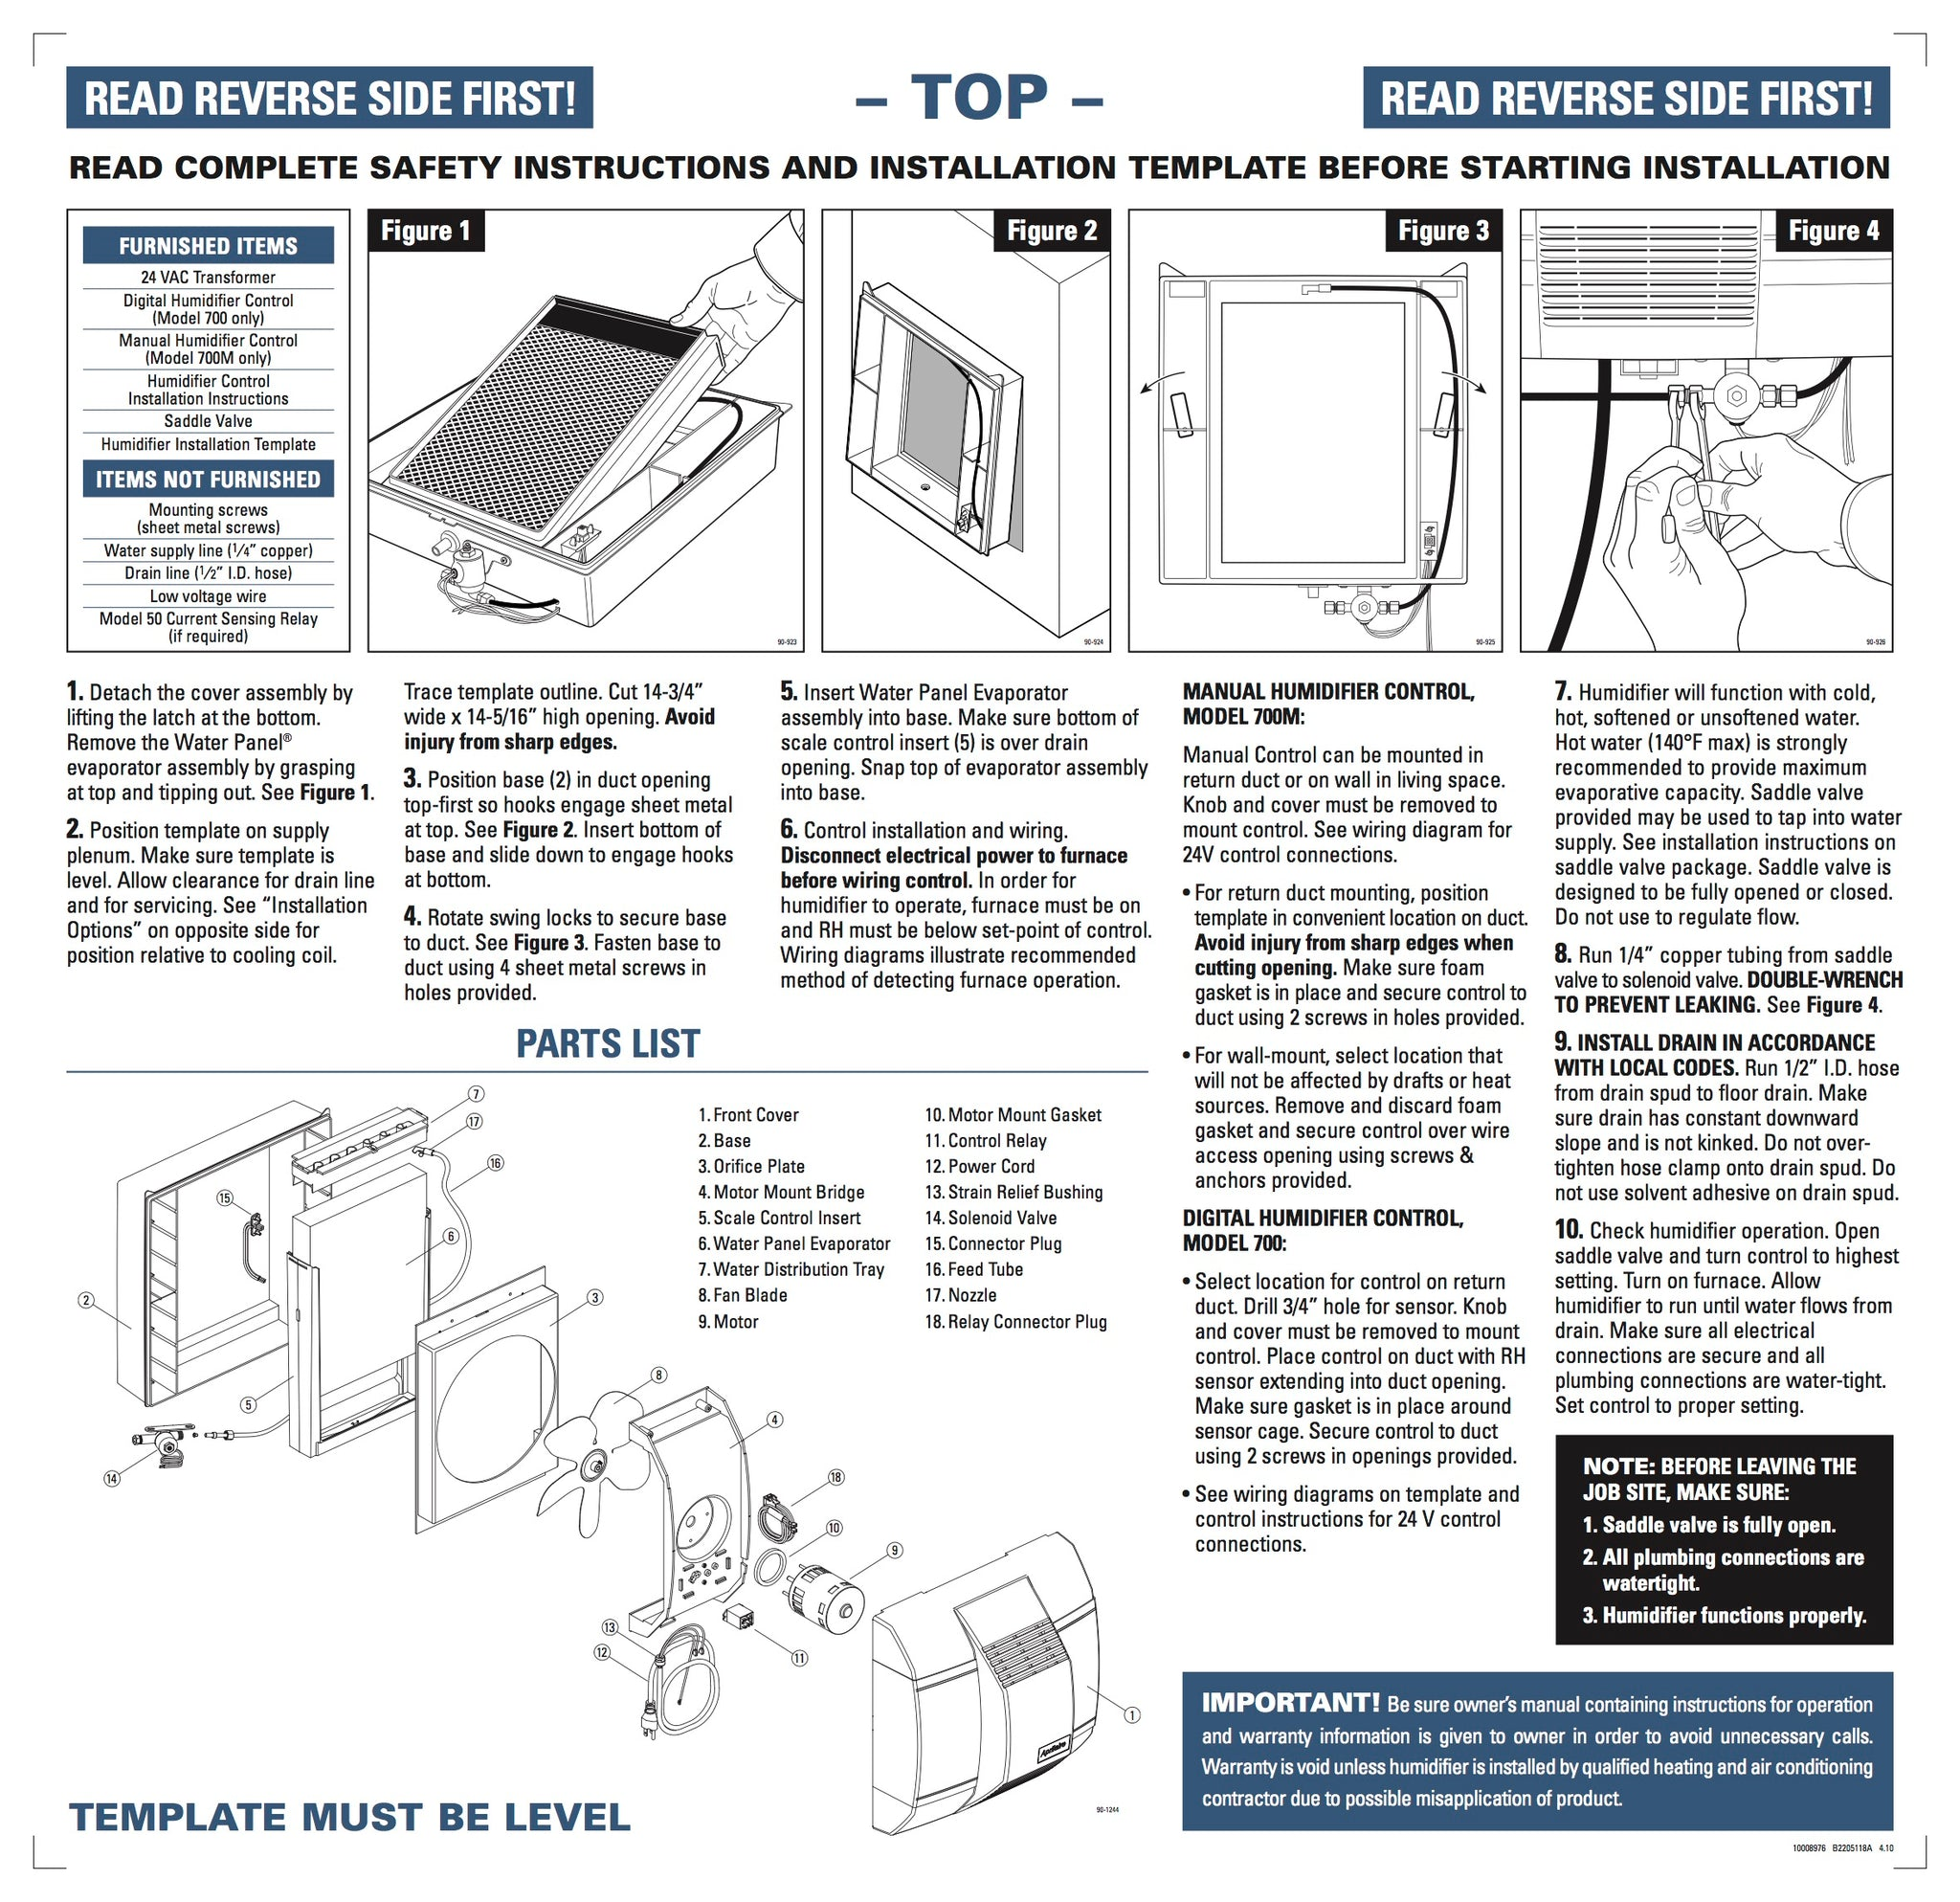 Aprilaire_700_Humidifier_Instructions_Page_2_2048x2048?vd1474913351 aprilaire 700 wiring diagram efcaviation com aprilaire 600 humidifier wiring diagram at panicattacktreatment.co